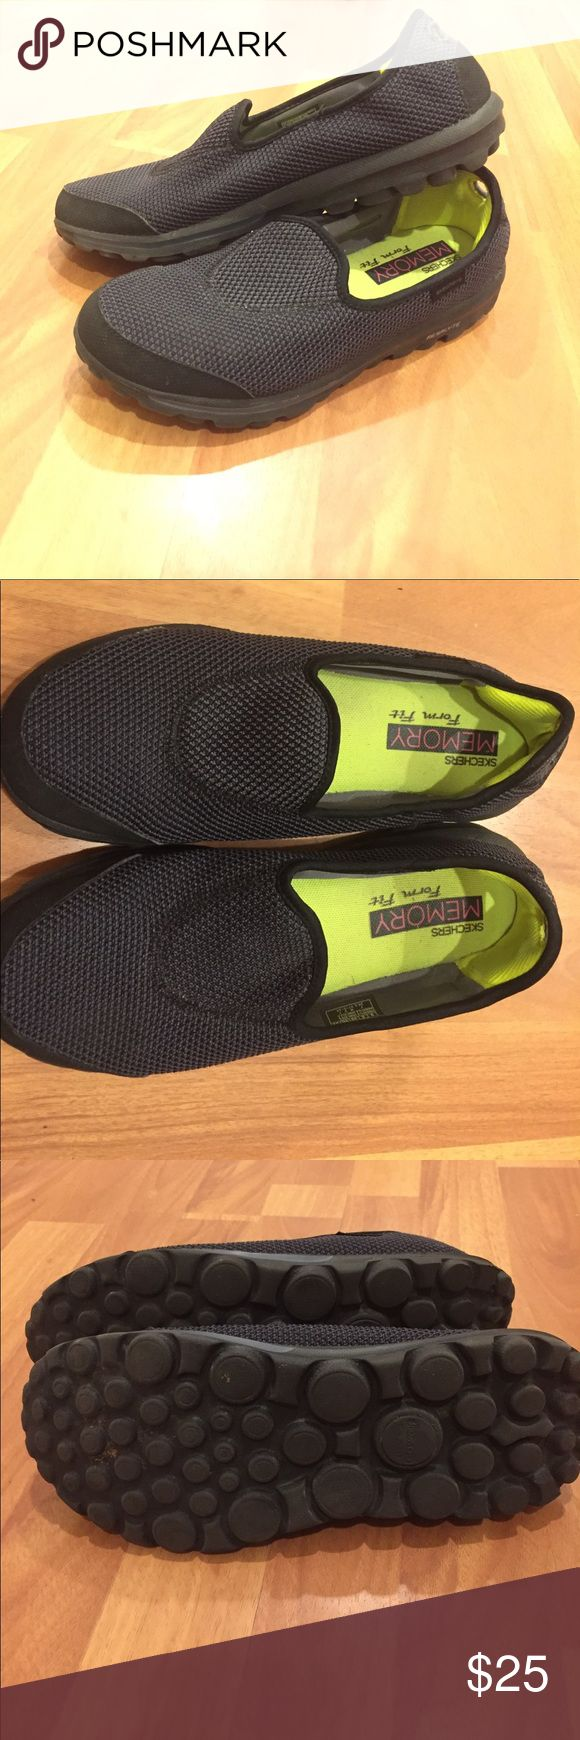 Sketchers go walk slip on sneakers Gently used clip on sneakers. These shoes have a heavenly memory foam lining that make walking all day super comfy. There is even memory foam on the back of the heel for added comfort! Skechers Shoes